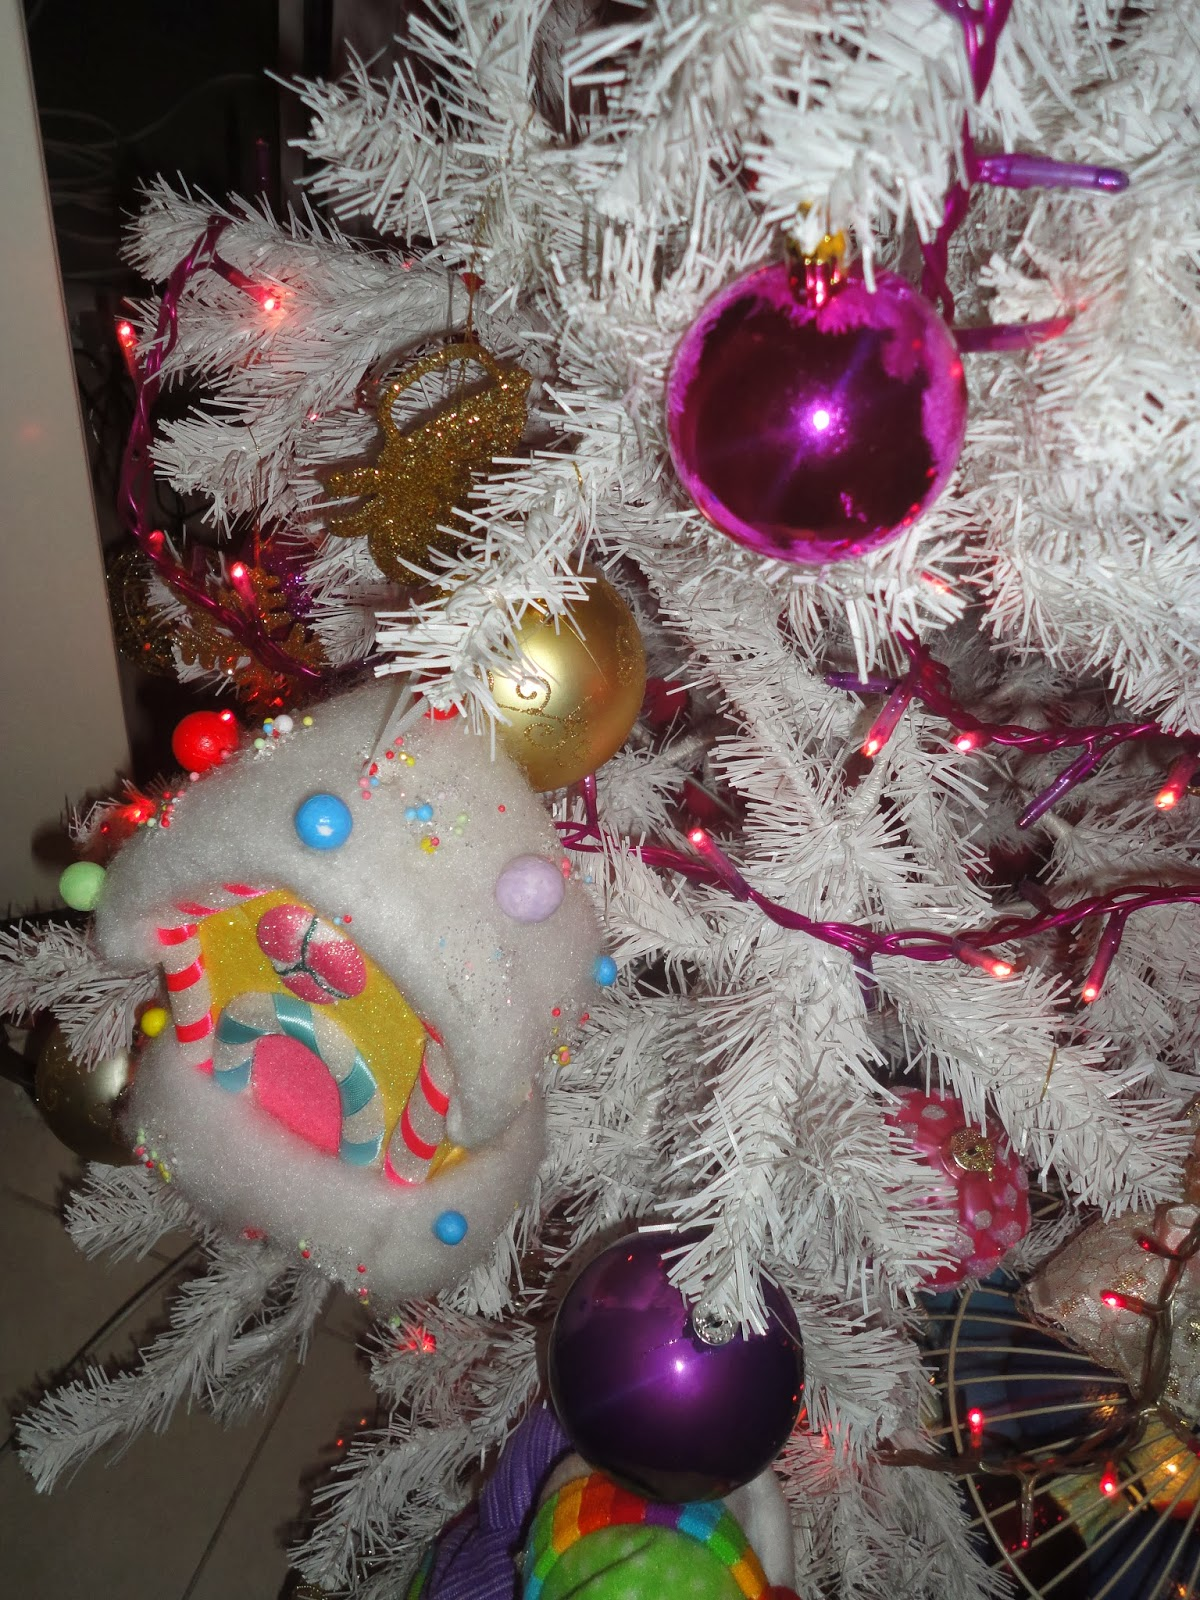 furthermorei decorated a smallertable top christmas treeit is a really nice ideaif there is not enough space for a big oneit is also gorgeousif you - Best Way To Decorate A White Christmas Tree